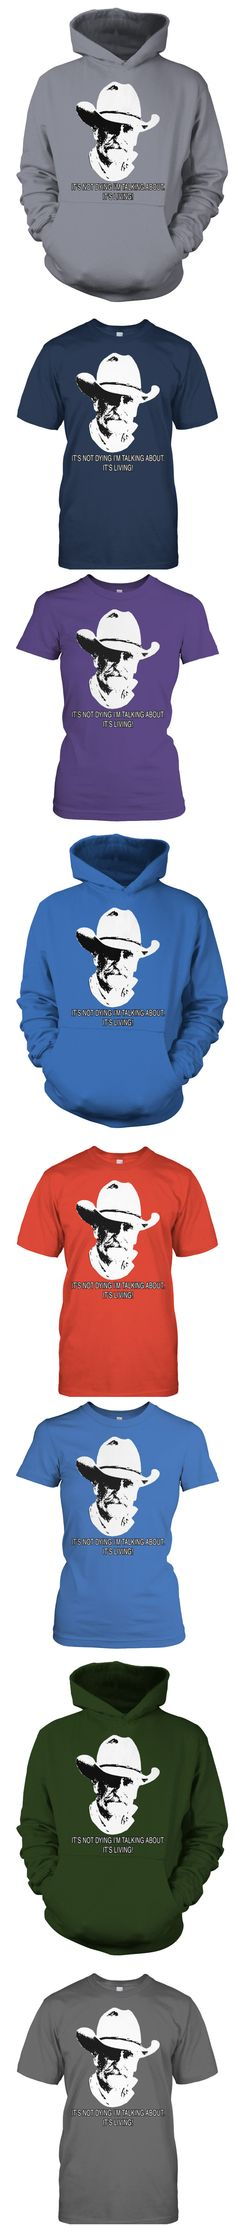 """Awesome Lonesome Dove """"It's not dying"""" quote design! I LOVE it!"""